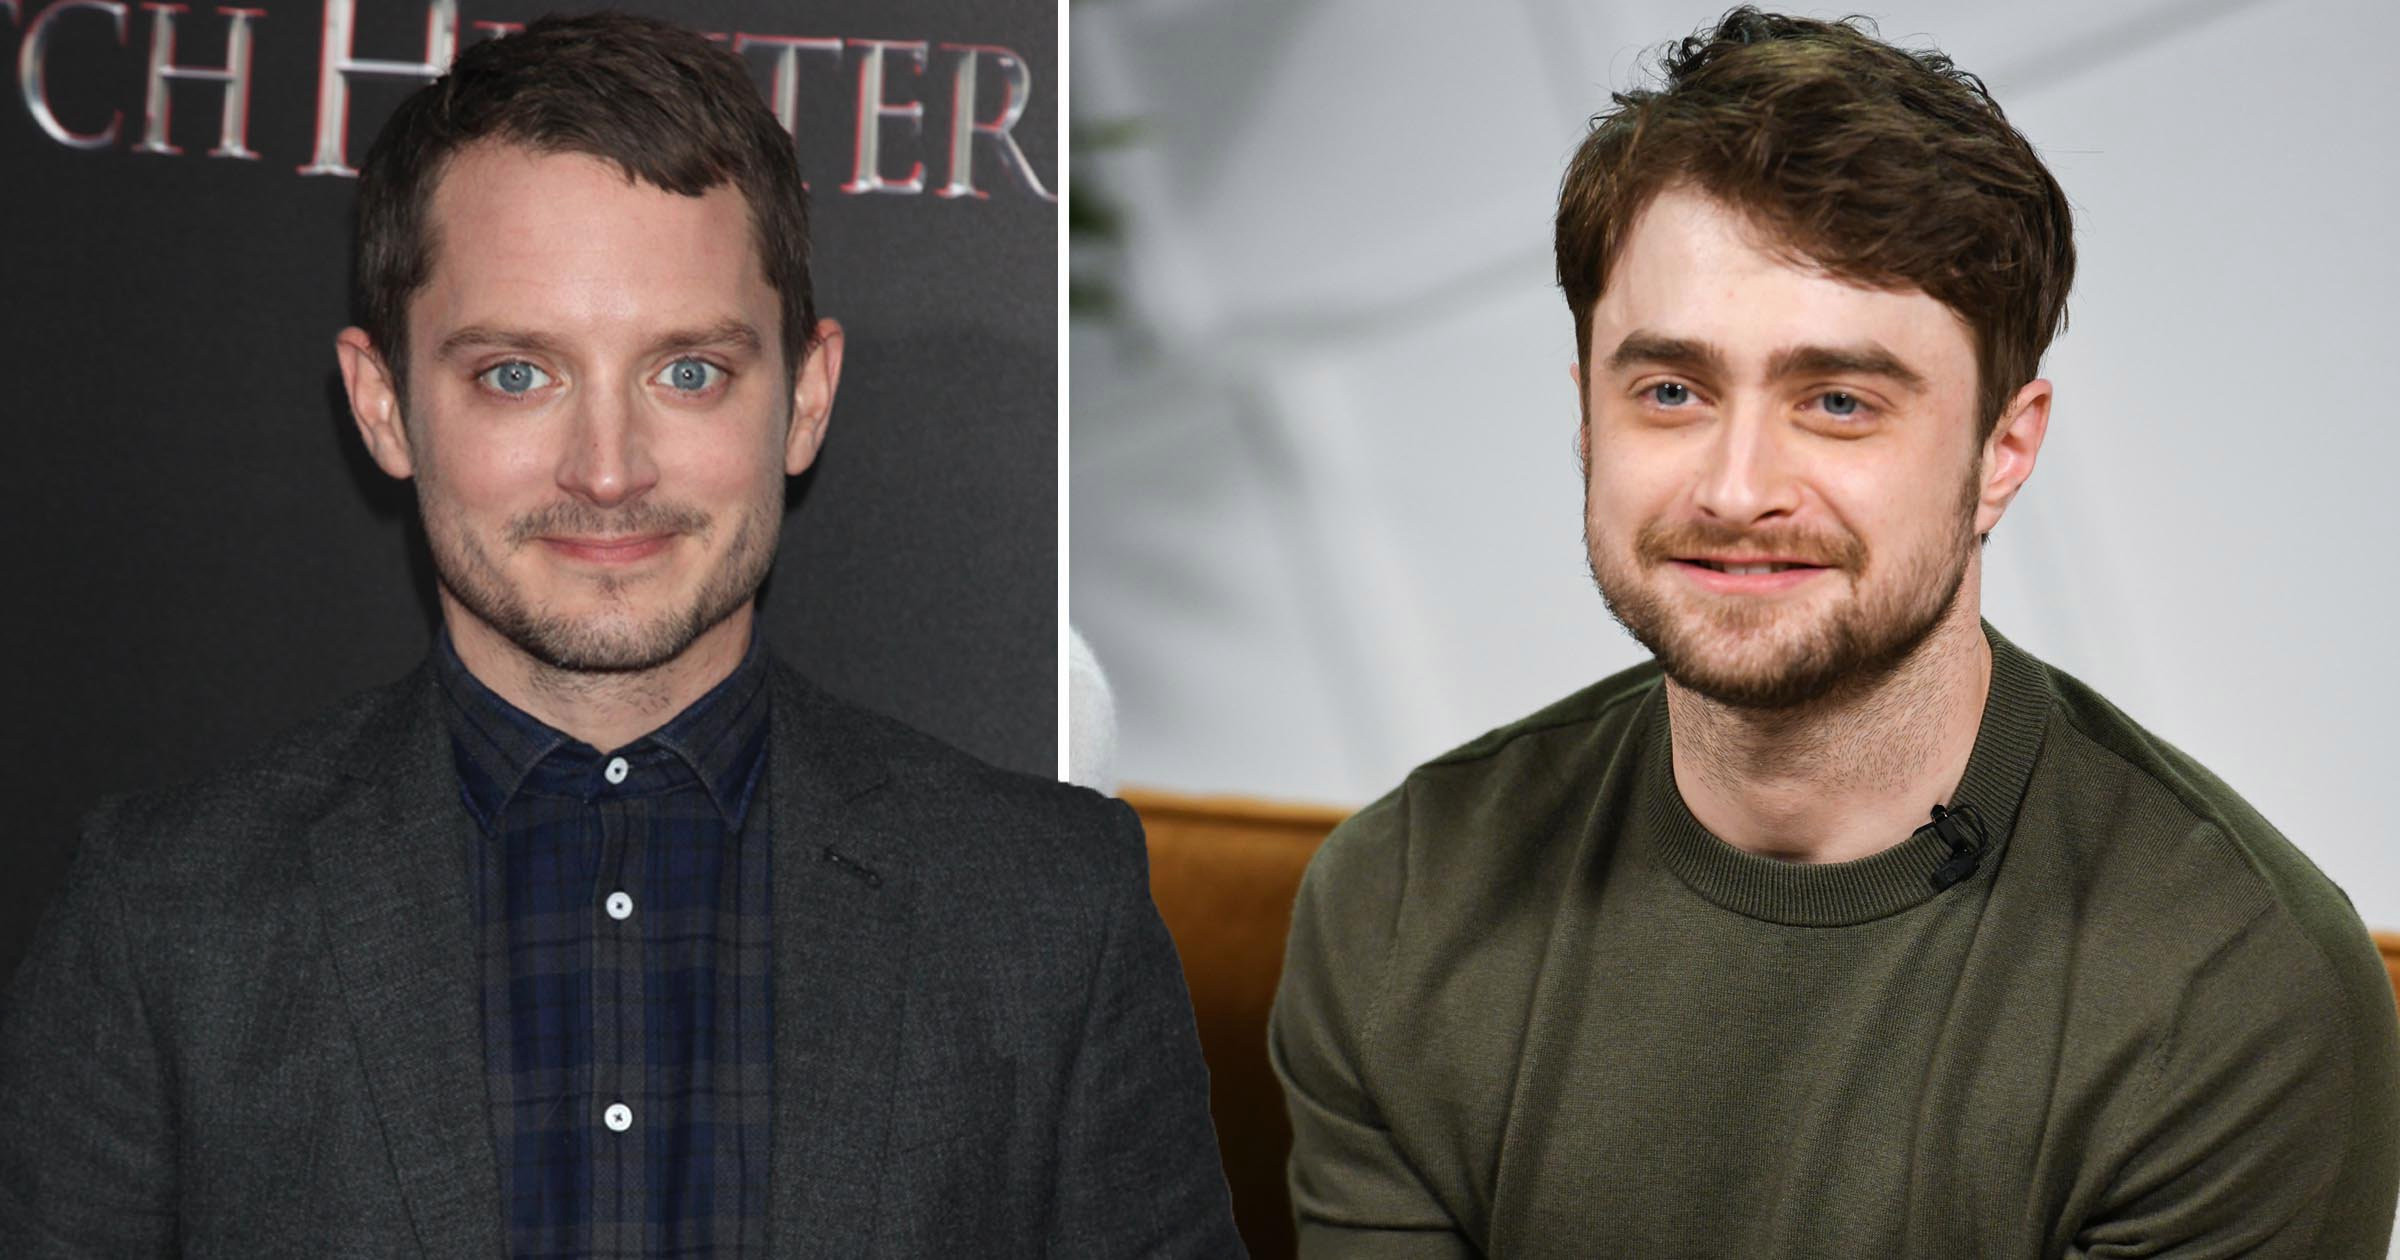 Elijah Wood thinks it would be 'really fun' playing 'lookalike' Daniel Radcliffe's brother